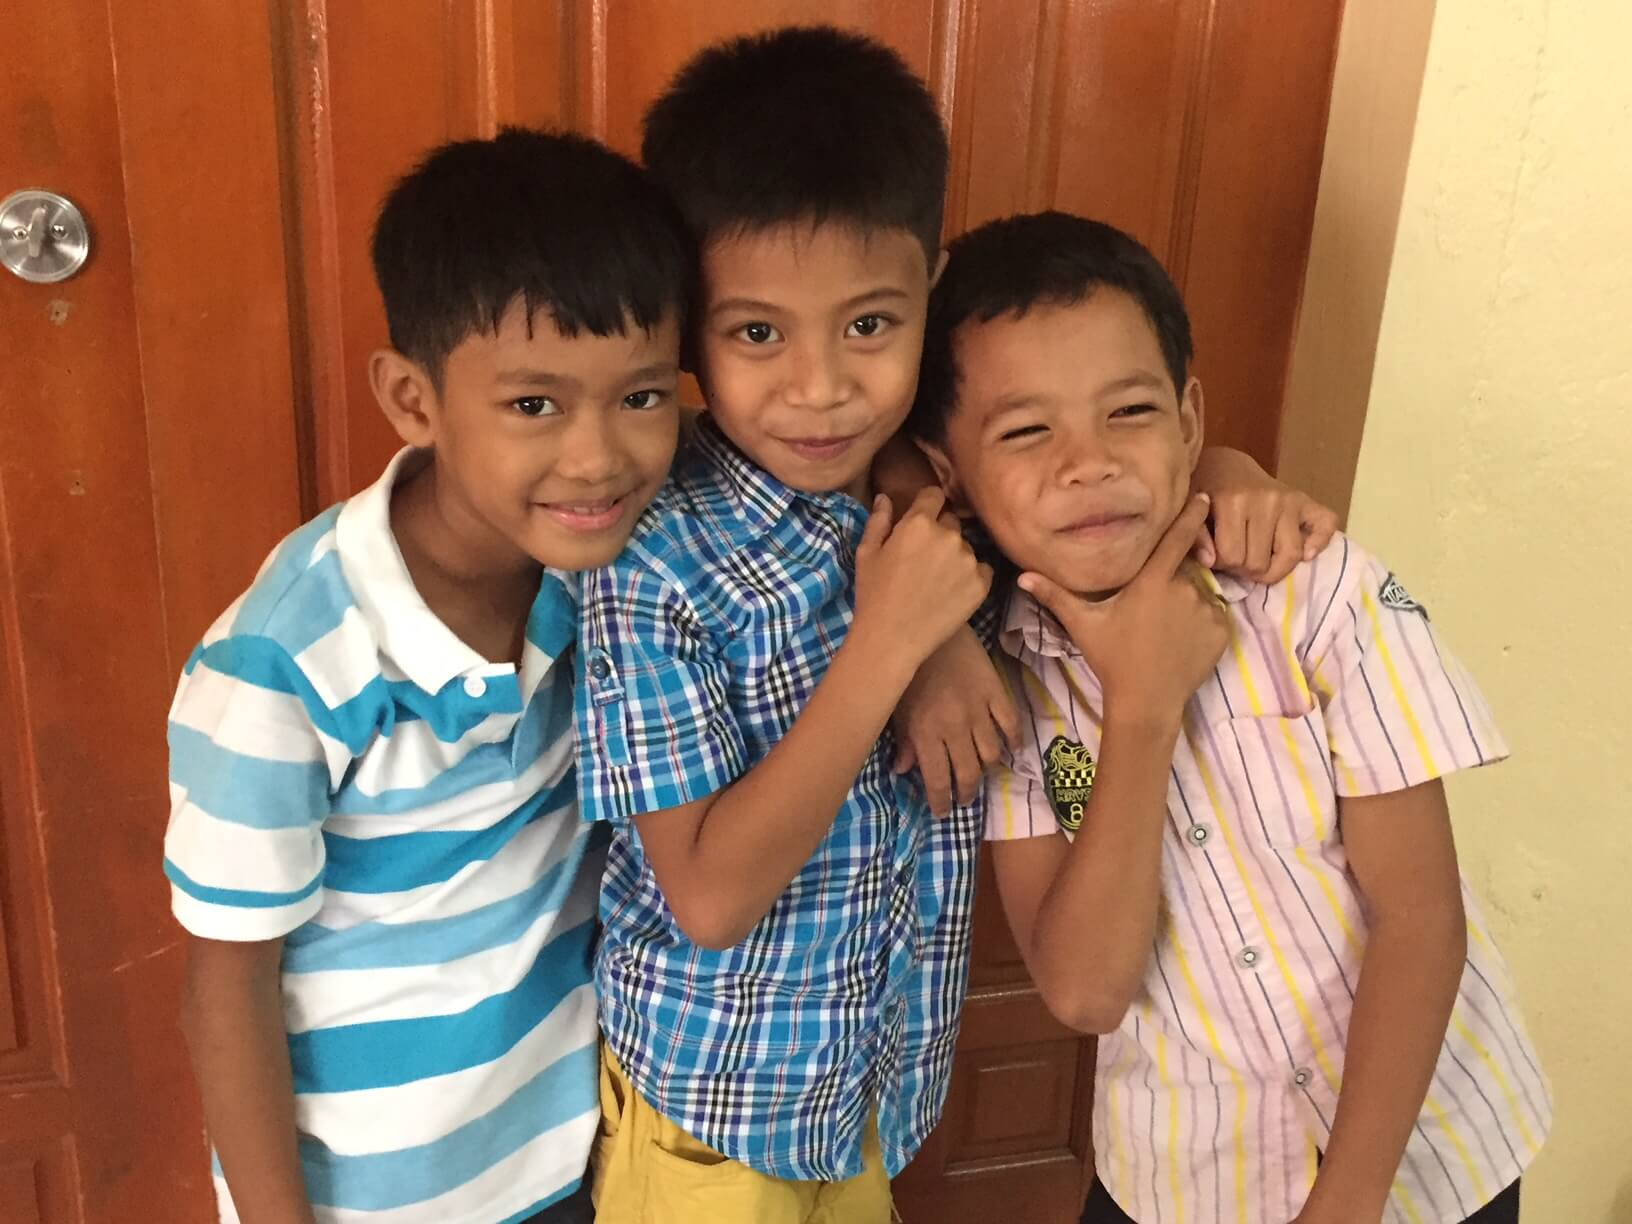 3 boys from the Phillipines smiling